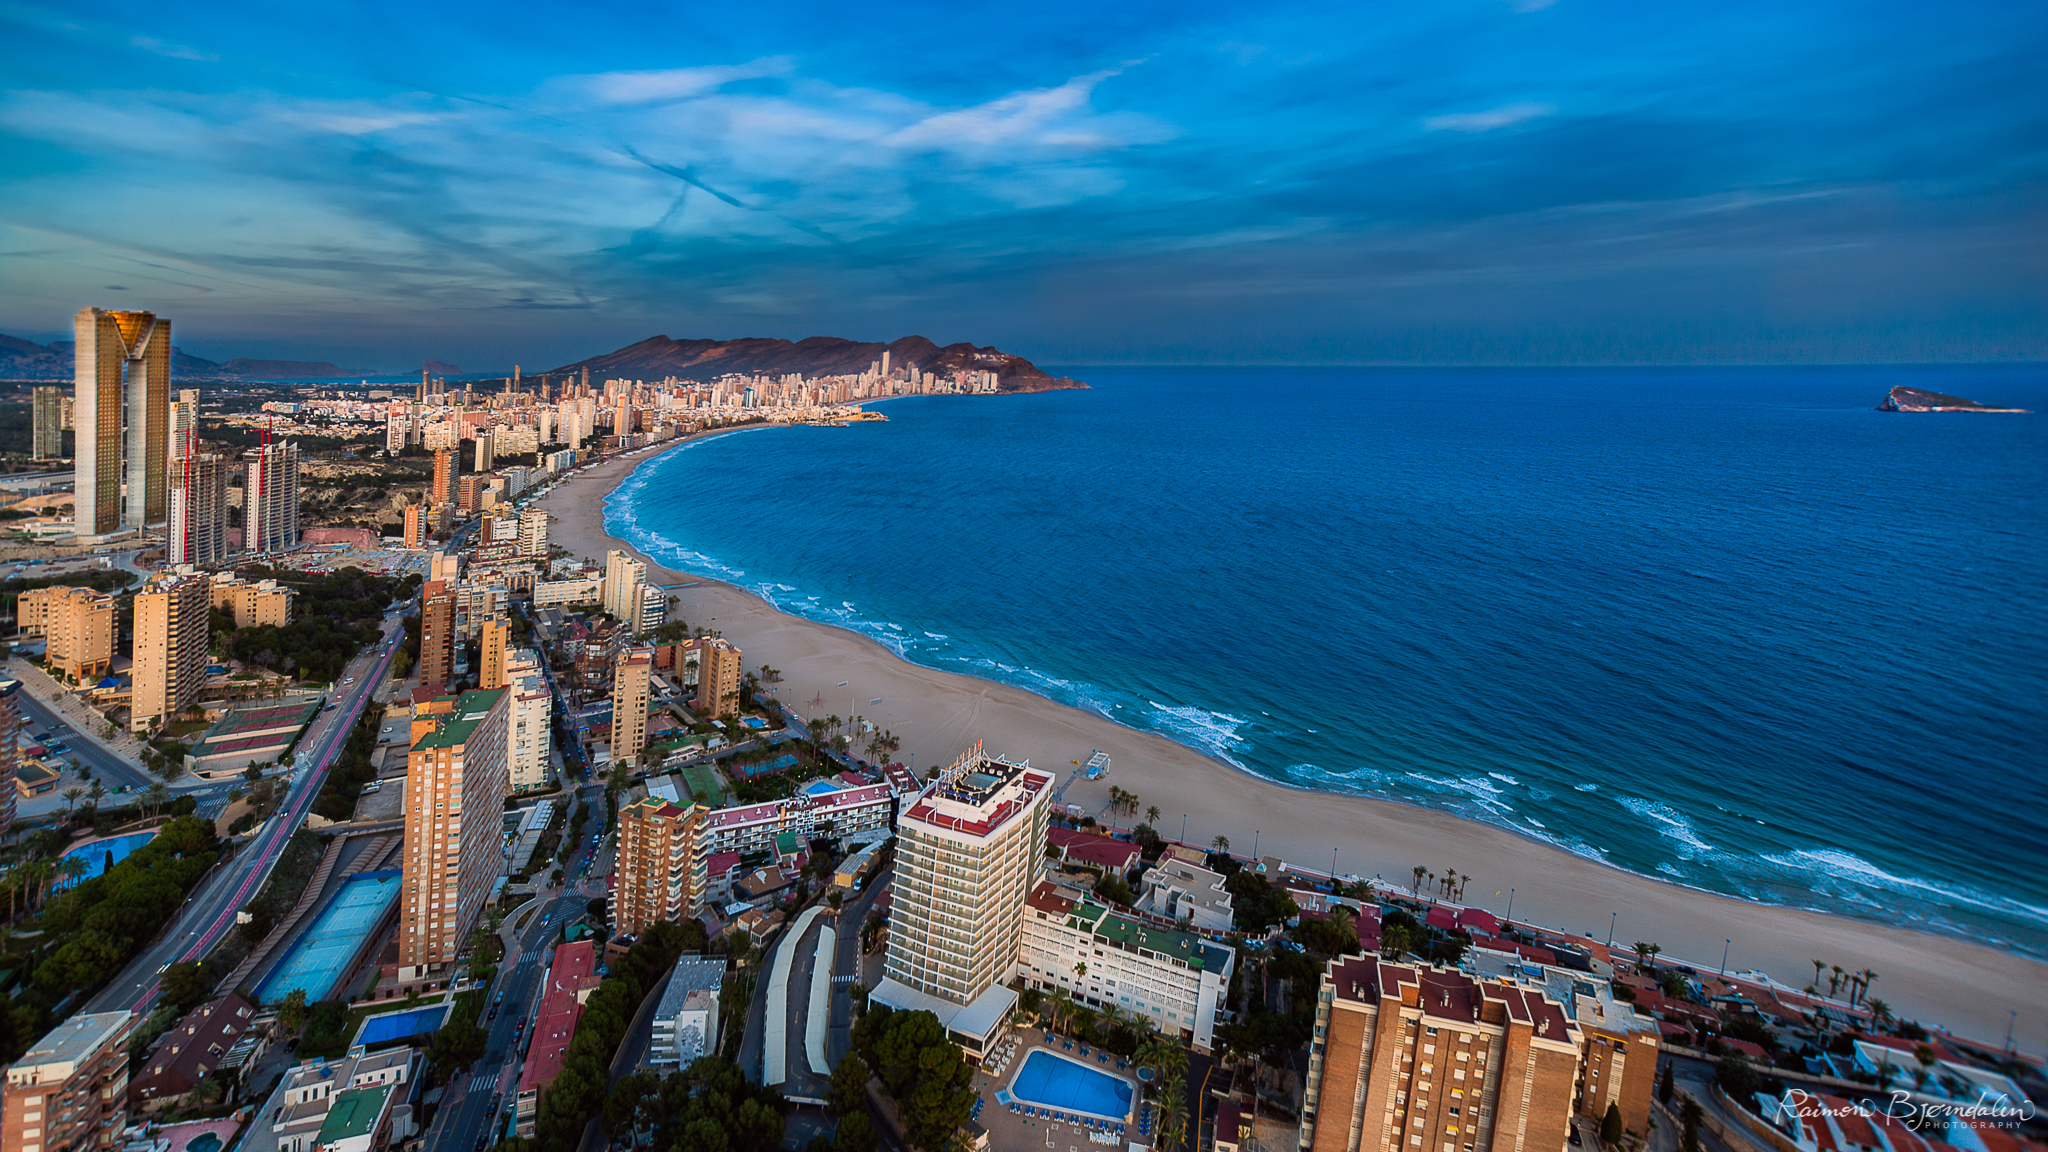 View from the top of the Gran Hotel Bali in Benidorm, Spain.